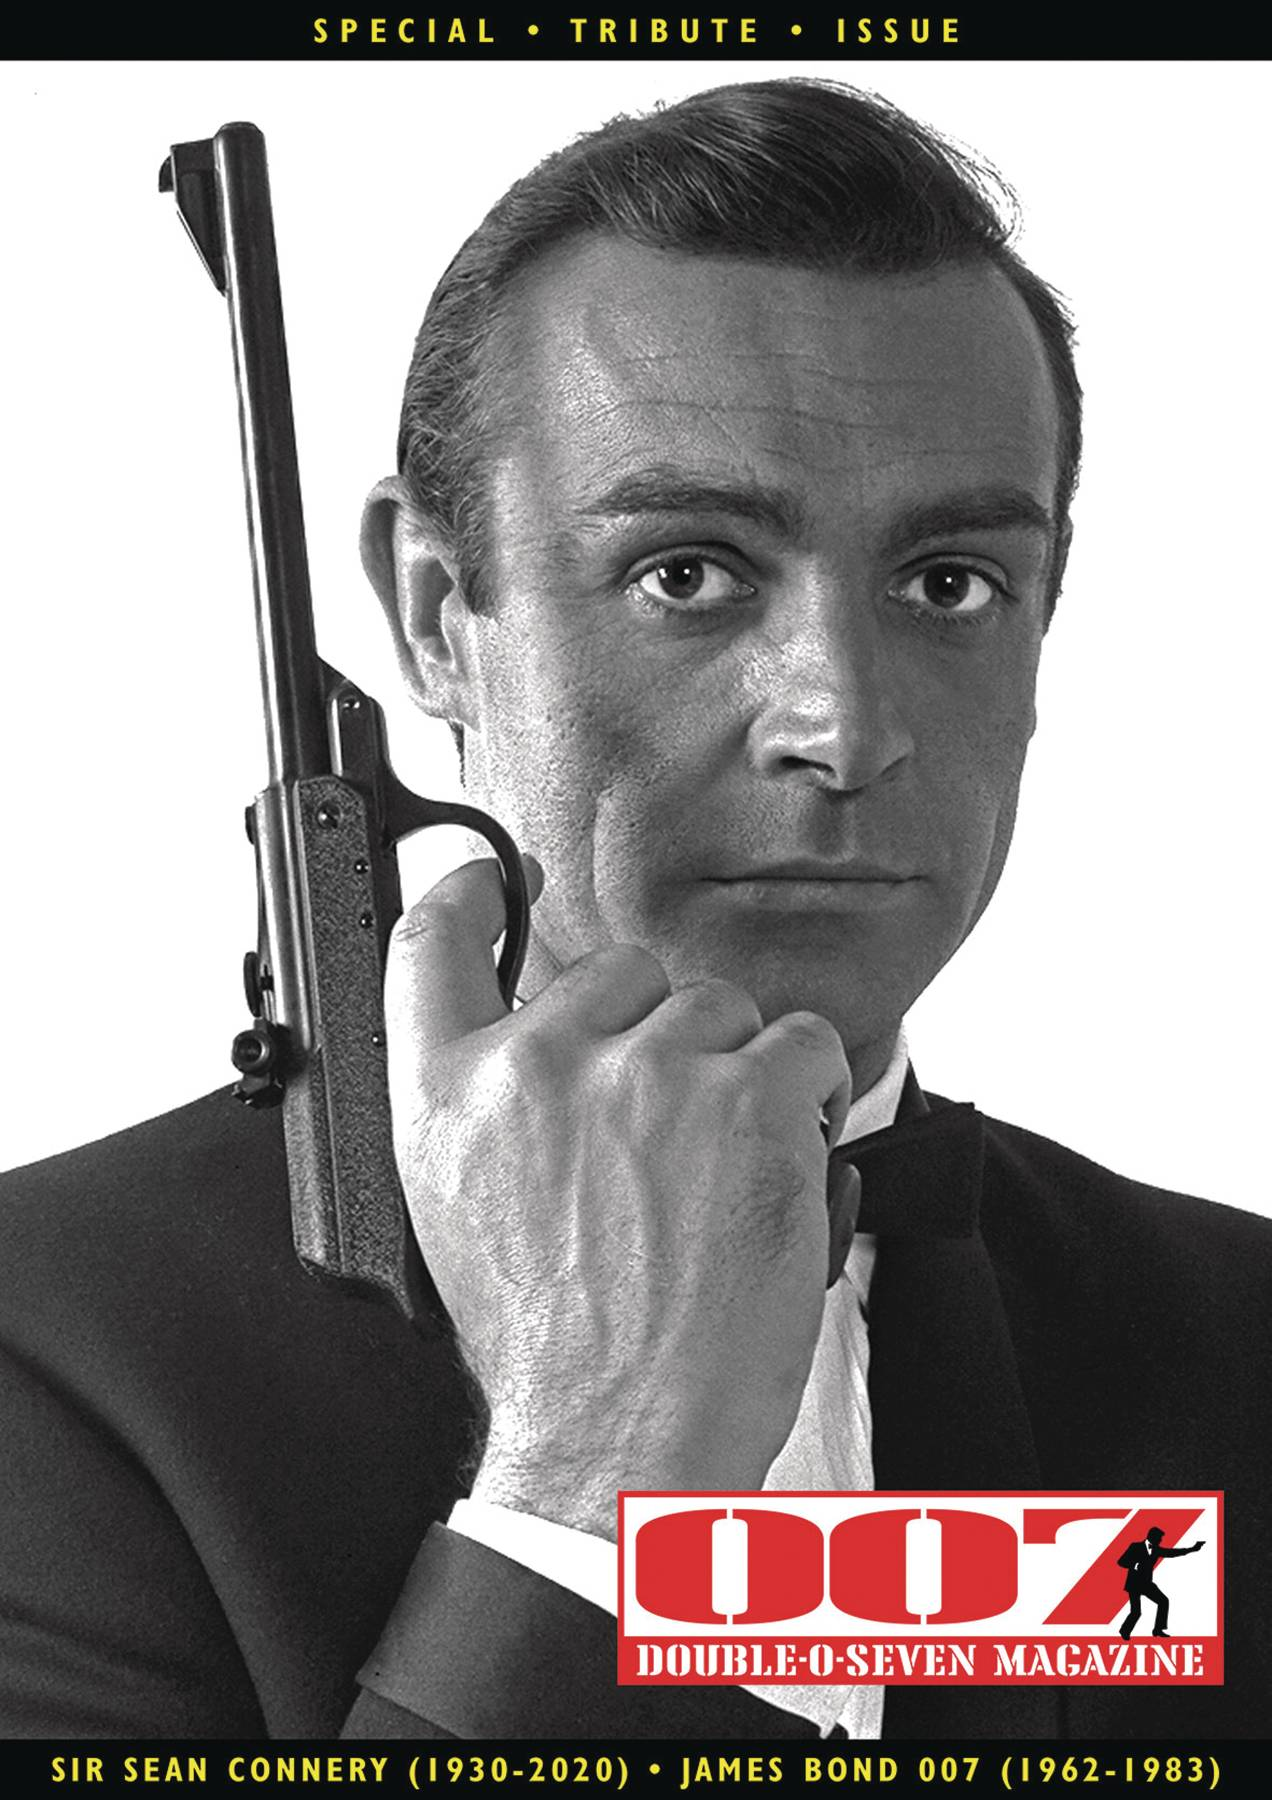 007 MAGAZINE SIE SEAN CONNERY TRIBUTE SPECIAL